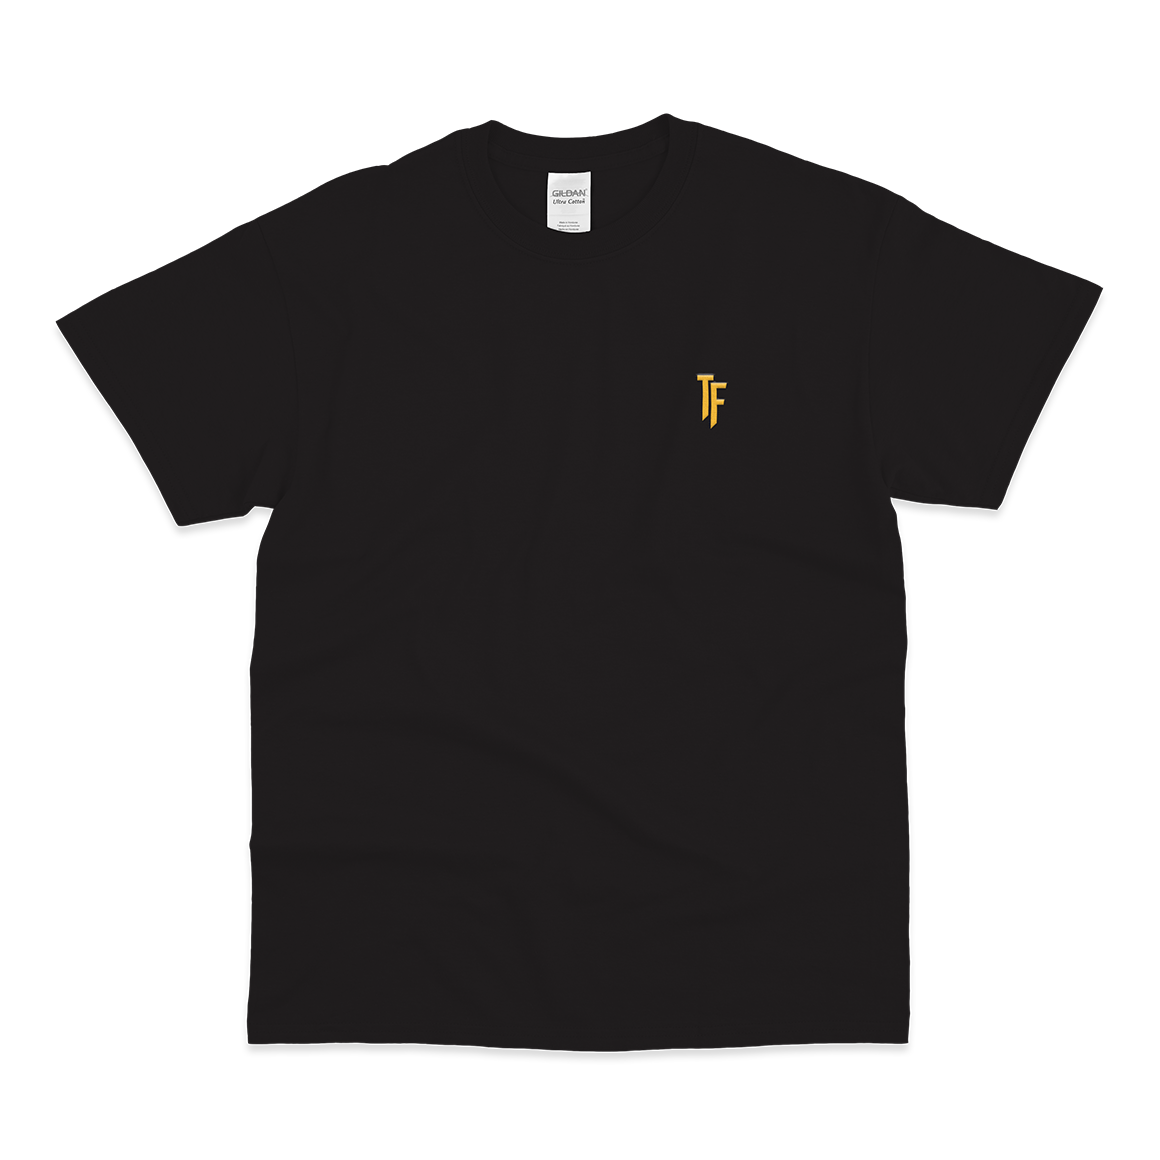 Black TF T-Shirt